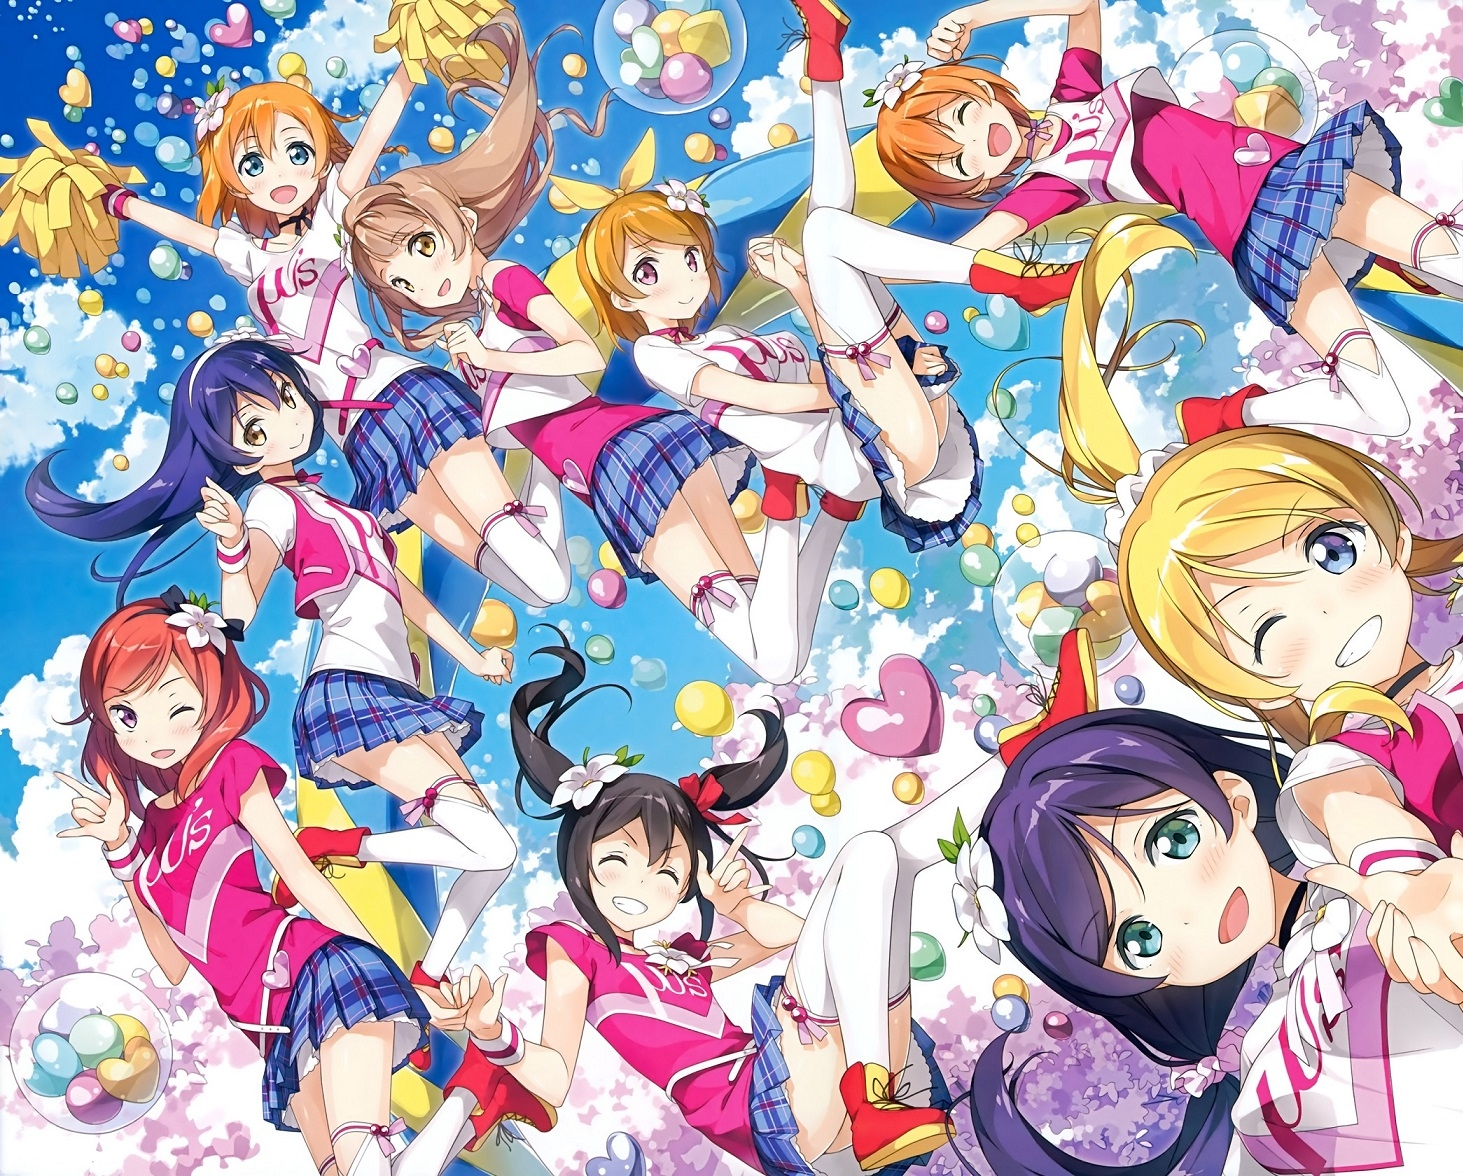 Download HD Love Live Wallpaper Gallery